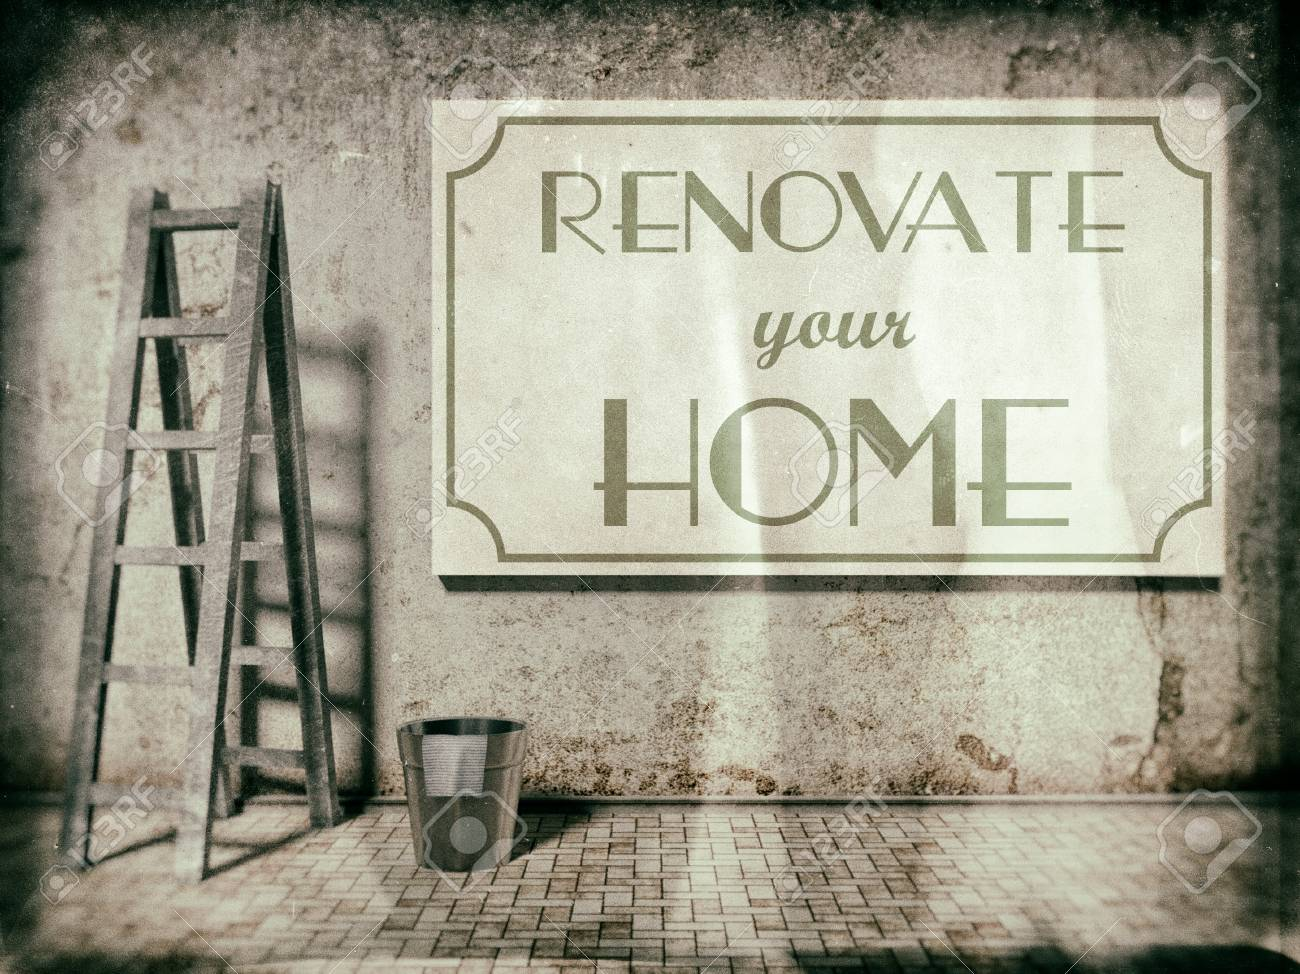 Renovate Your Home On Building Wall, Time To Refurbishment Stock Photo    25548716